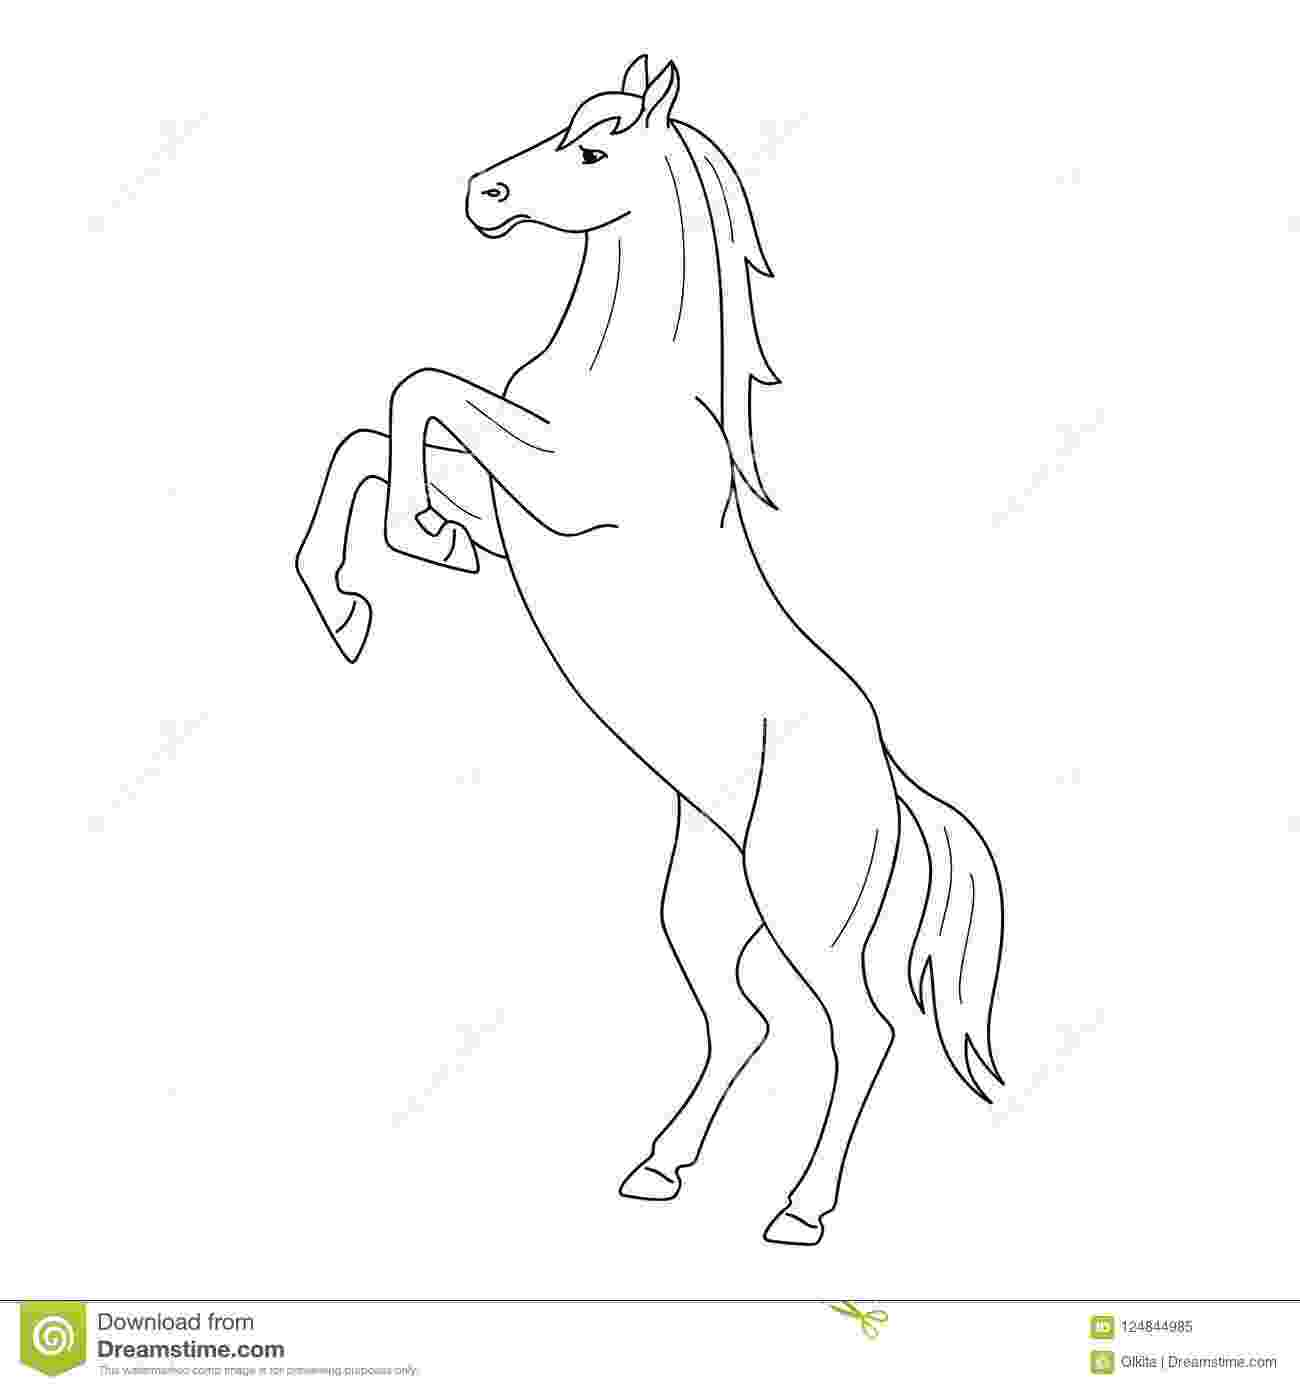 rearing horse coloring pages horse rearing lineart by solinabright on deviantart pages horse rearing coloring